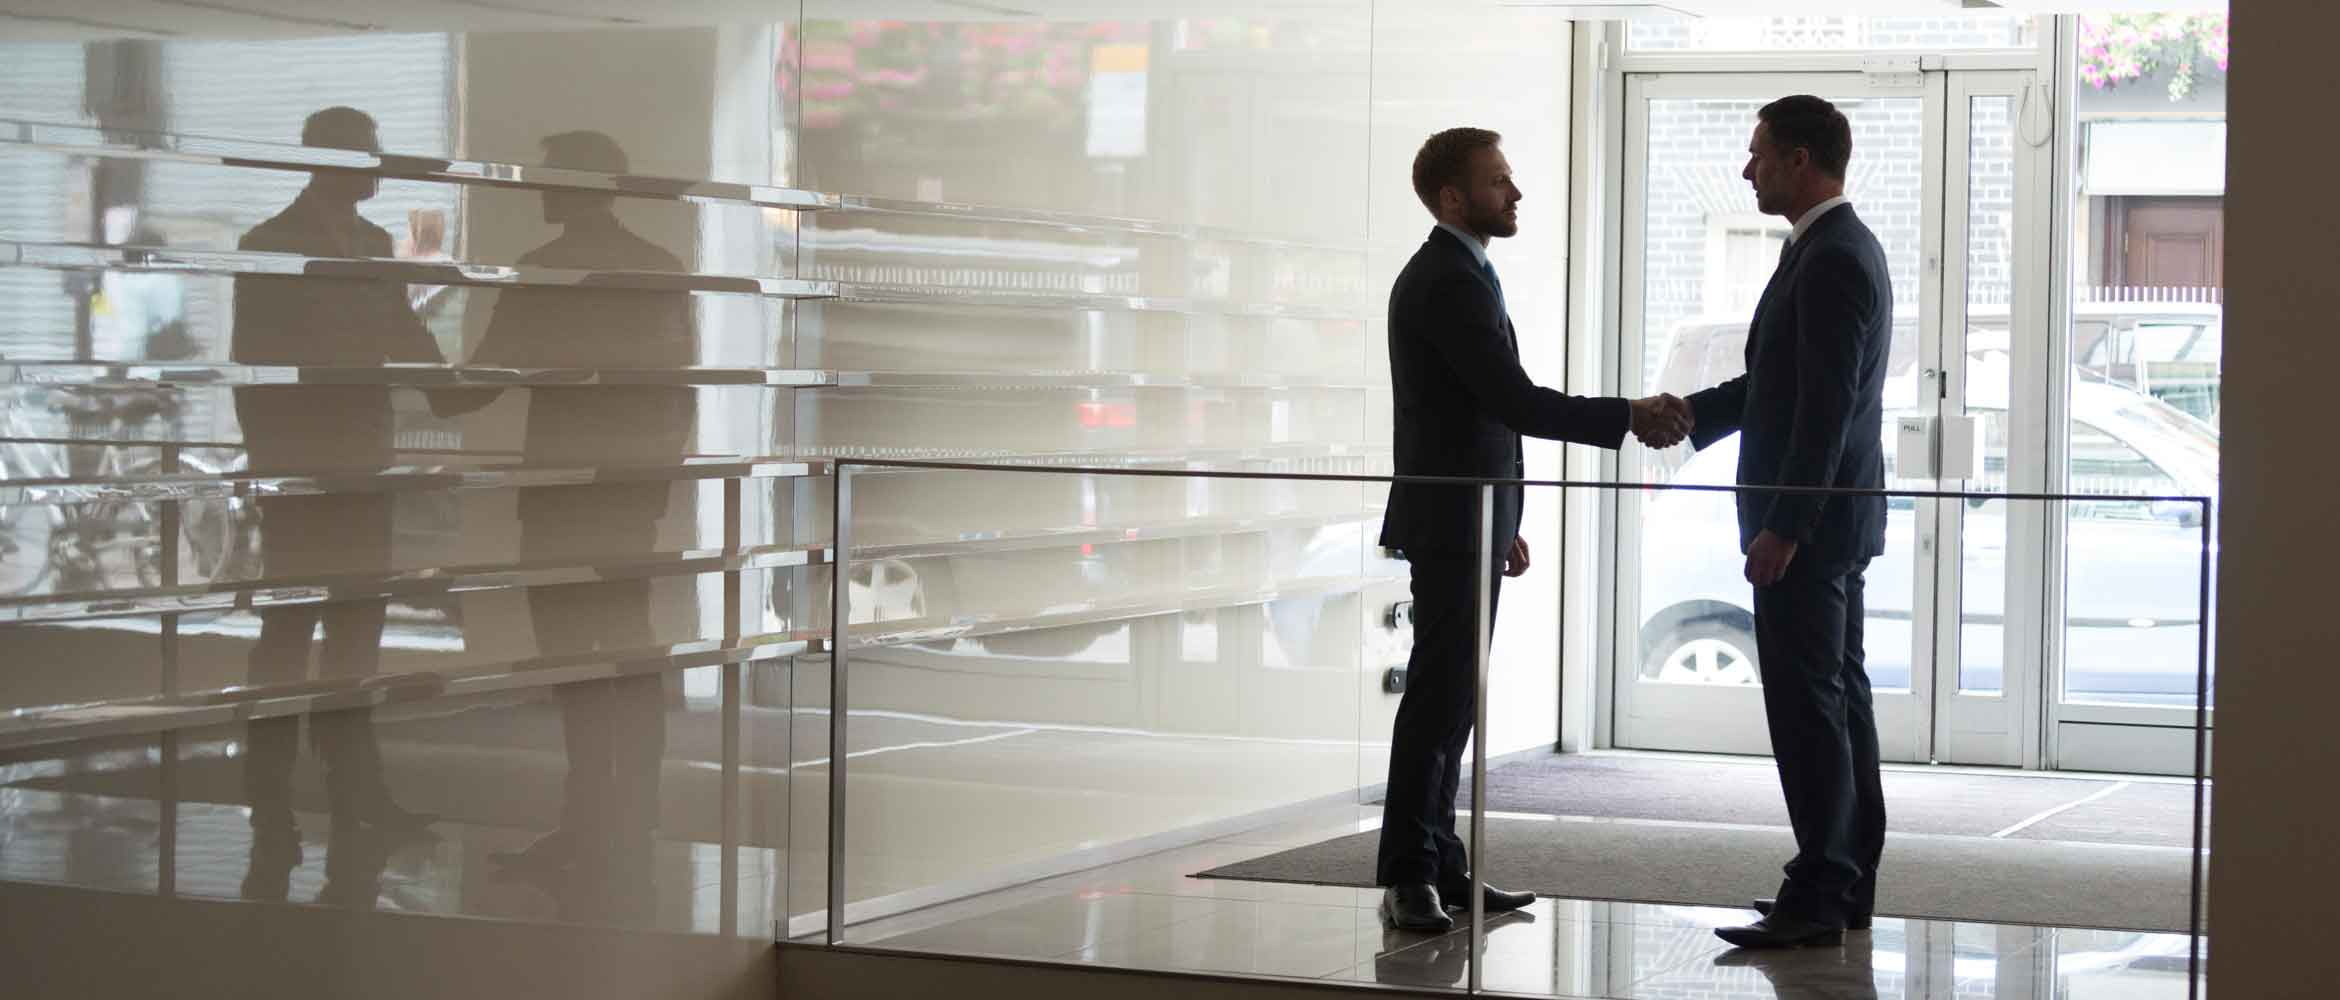 Silhouette of two businessmen shaking hands in office lobby. Male business professional executive colleagues standing near doorway of modern building, handshake.